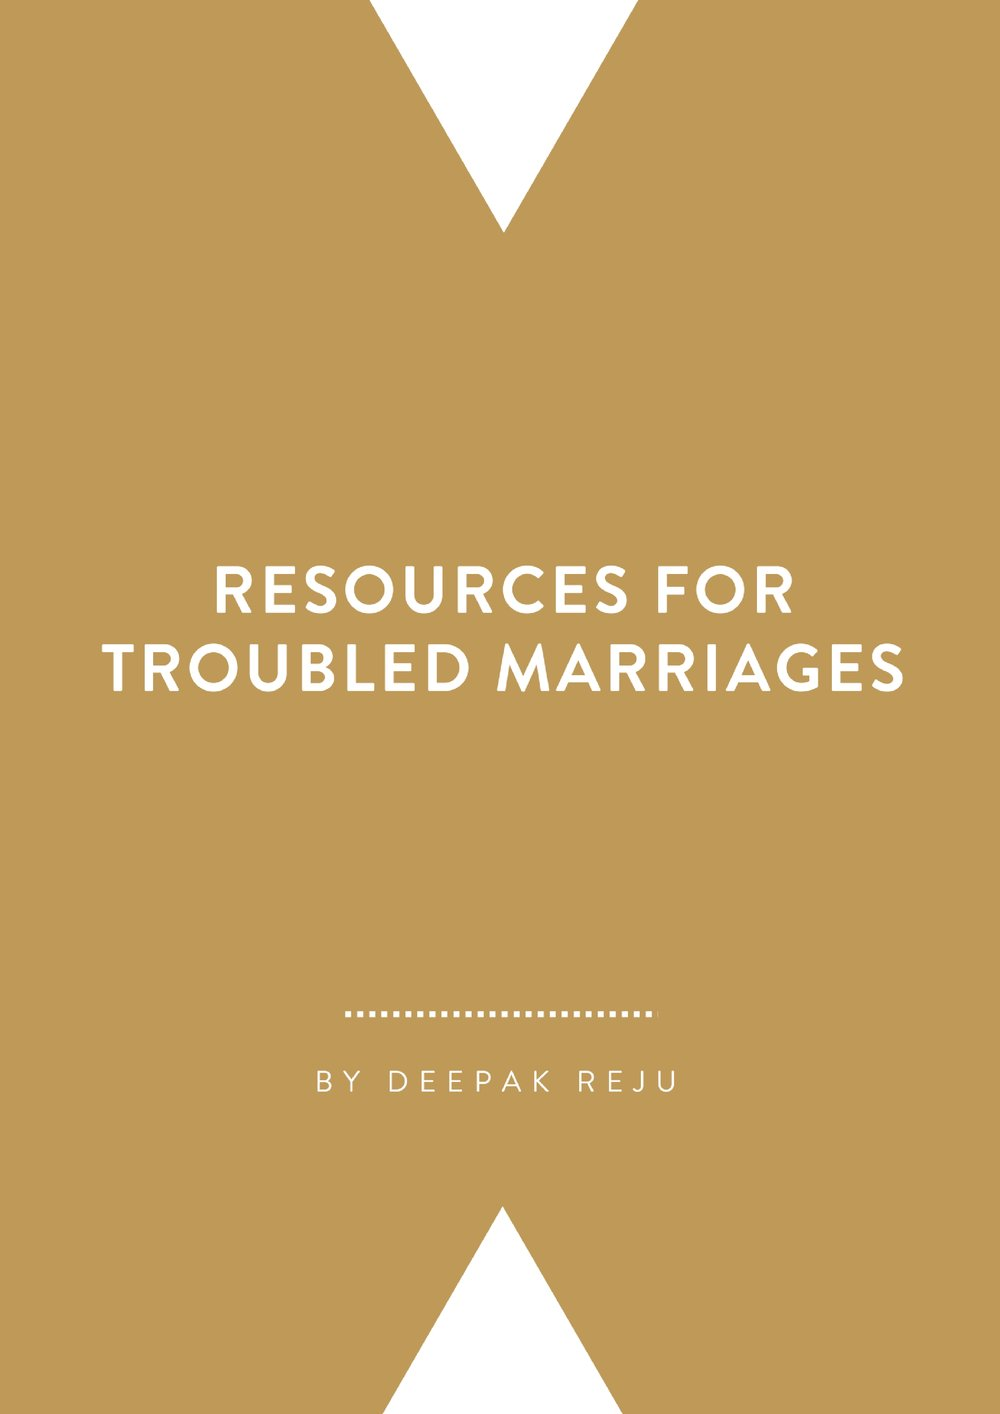 Resources for Troubled Marriages   By Deepak Reju